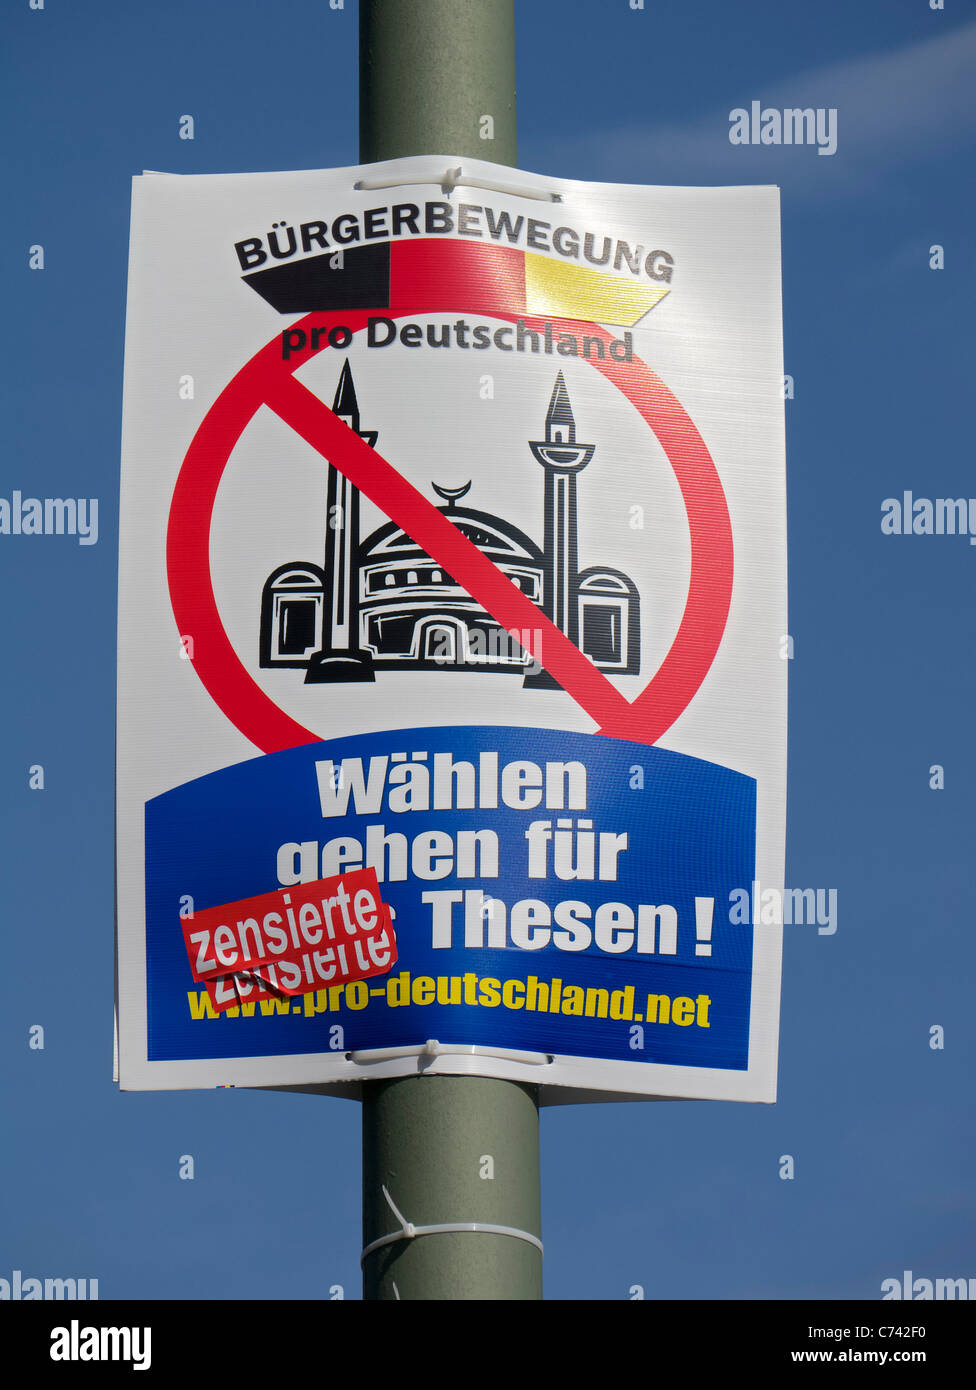 Anti-Islamic political election poster by pro Germany Citizens' Movement Party in Berlin Germany before elections - Stock Image